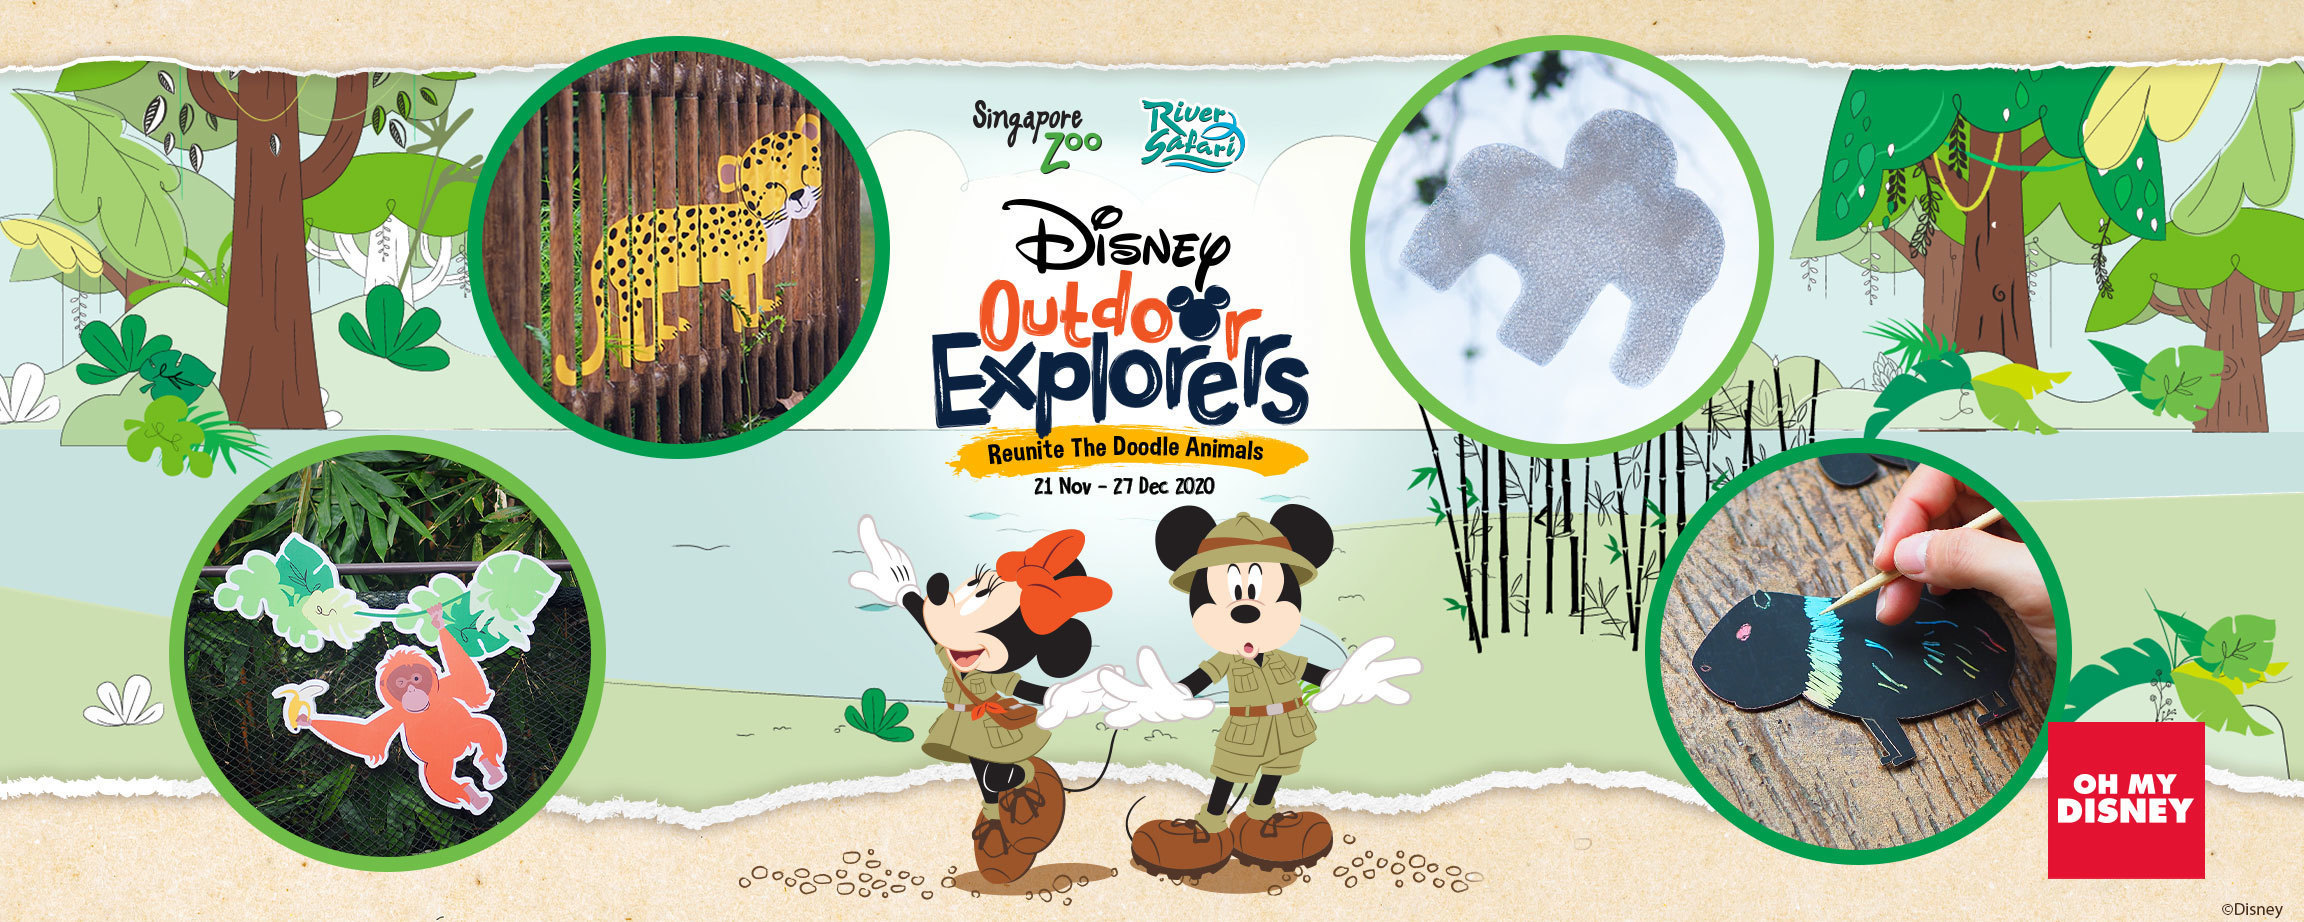 Disney's Outdoor Explorers - Reunite The Doodle Animals